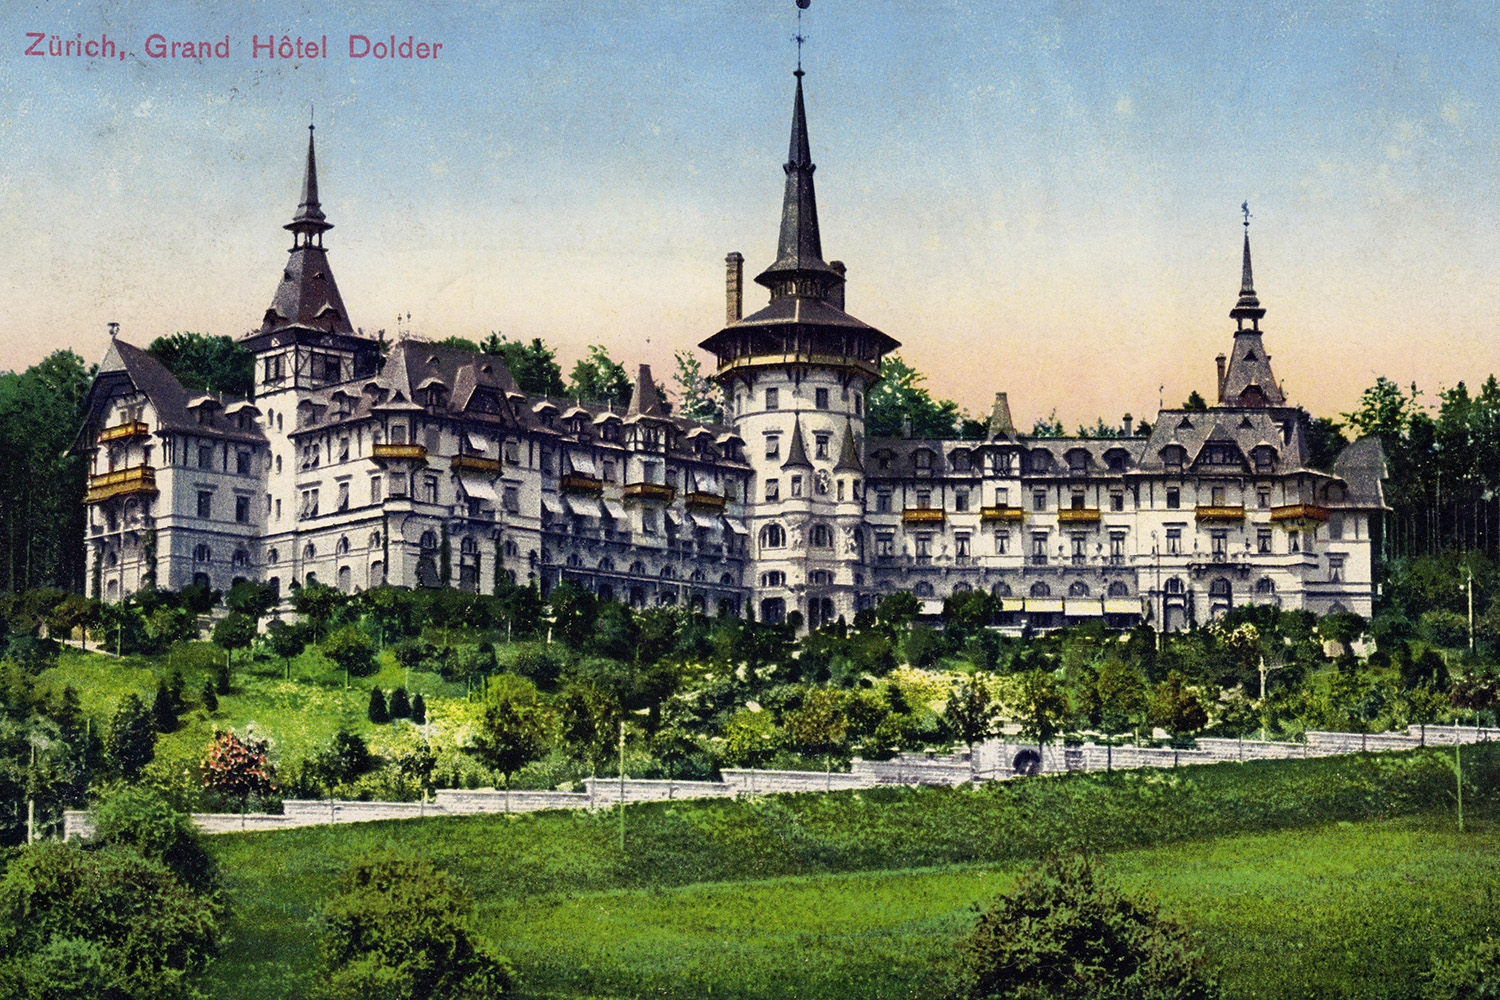 Grand Hotel Dolder, Zurich, Switzerland, c.1900.